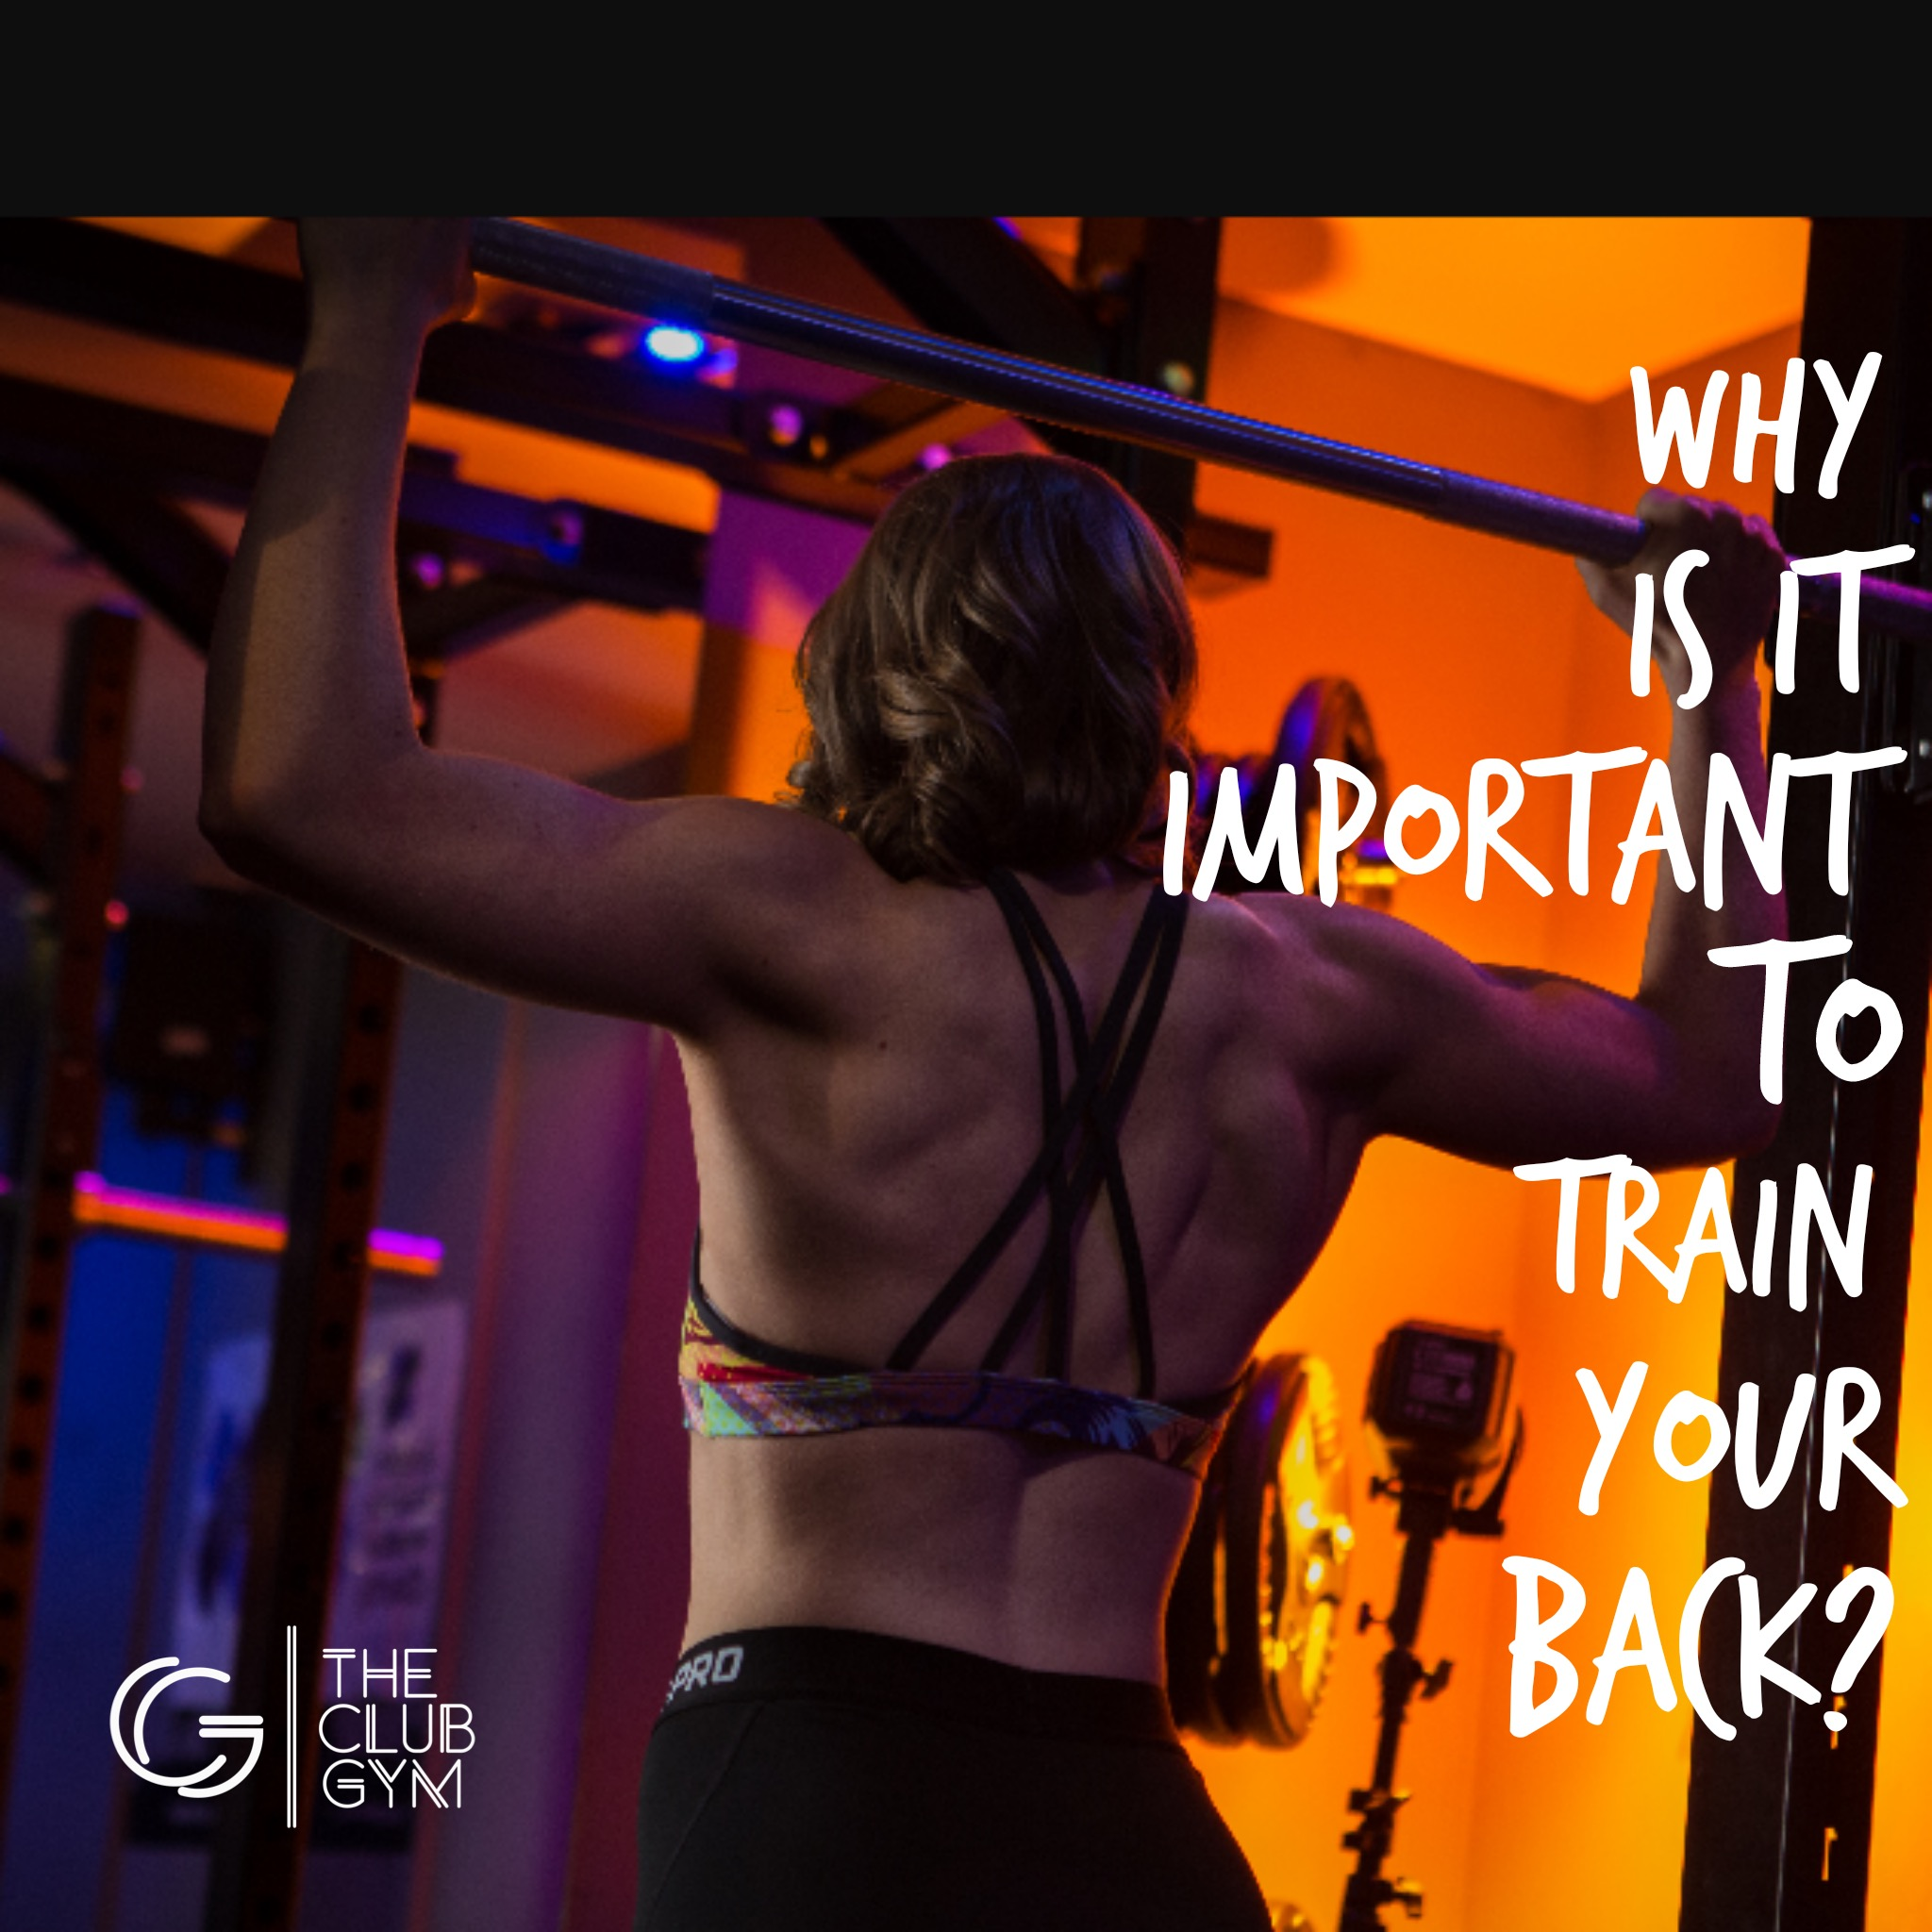 Why is it important to train your back